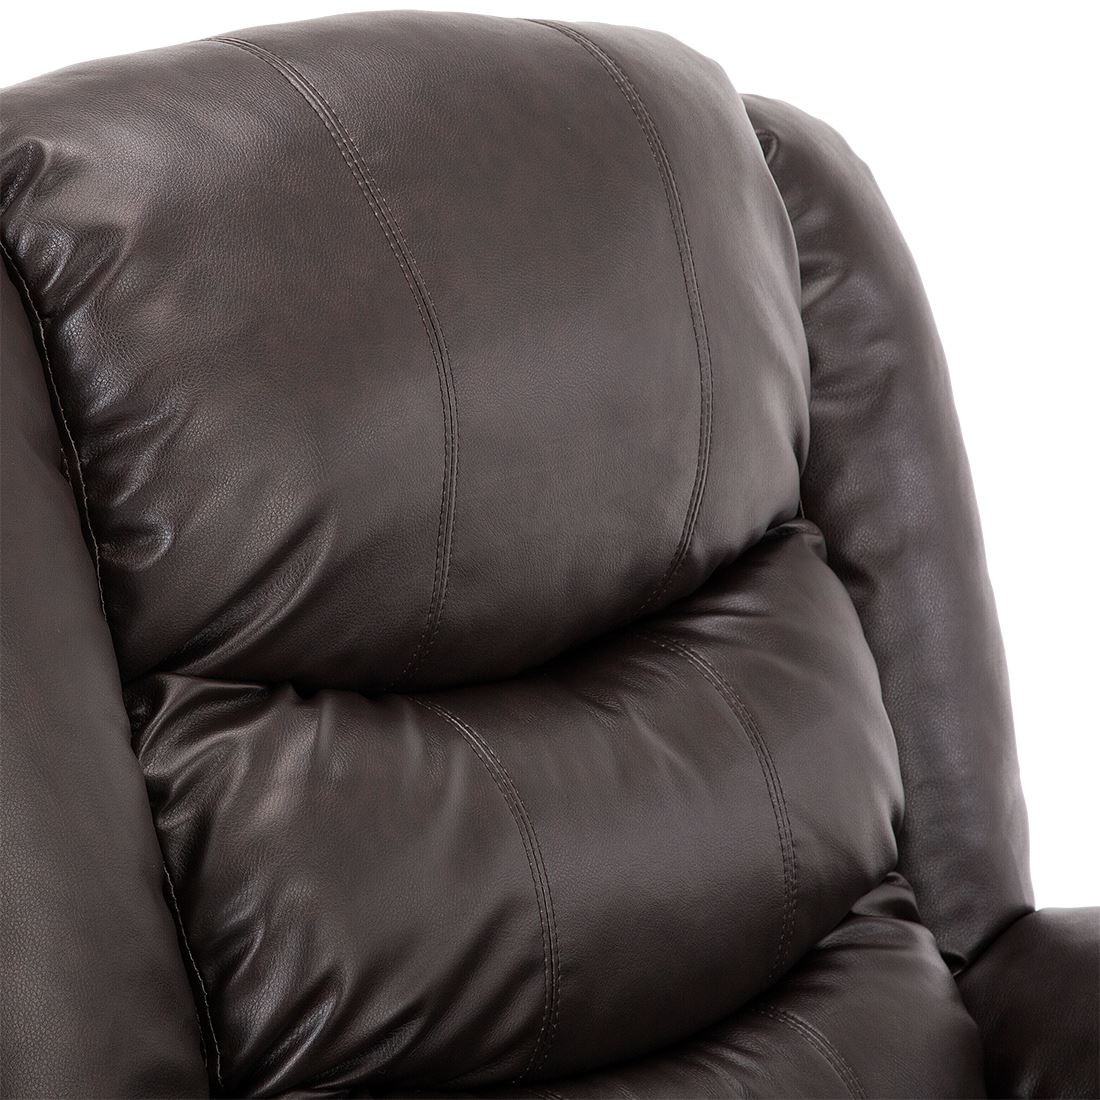 SEATTLE-ELECTRIC-RISE-REAL-LEATHER-RECLINER-ARMCHAIR-SOFA-HOME-LOUNGE-CHAIR thumbnail 18